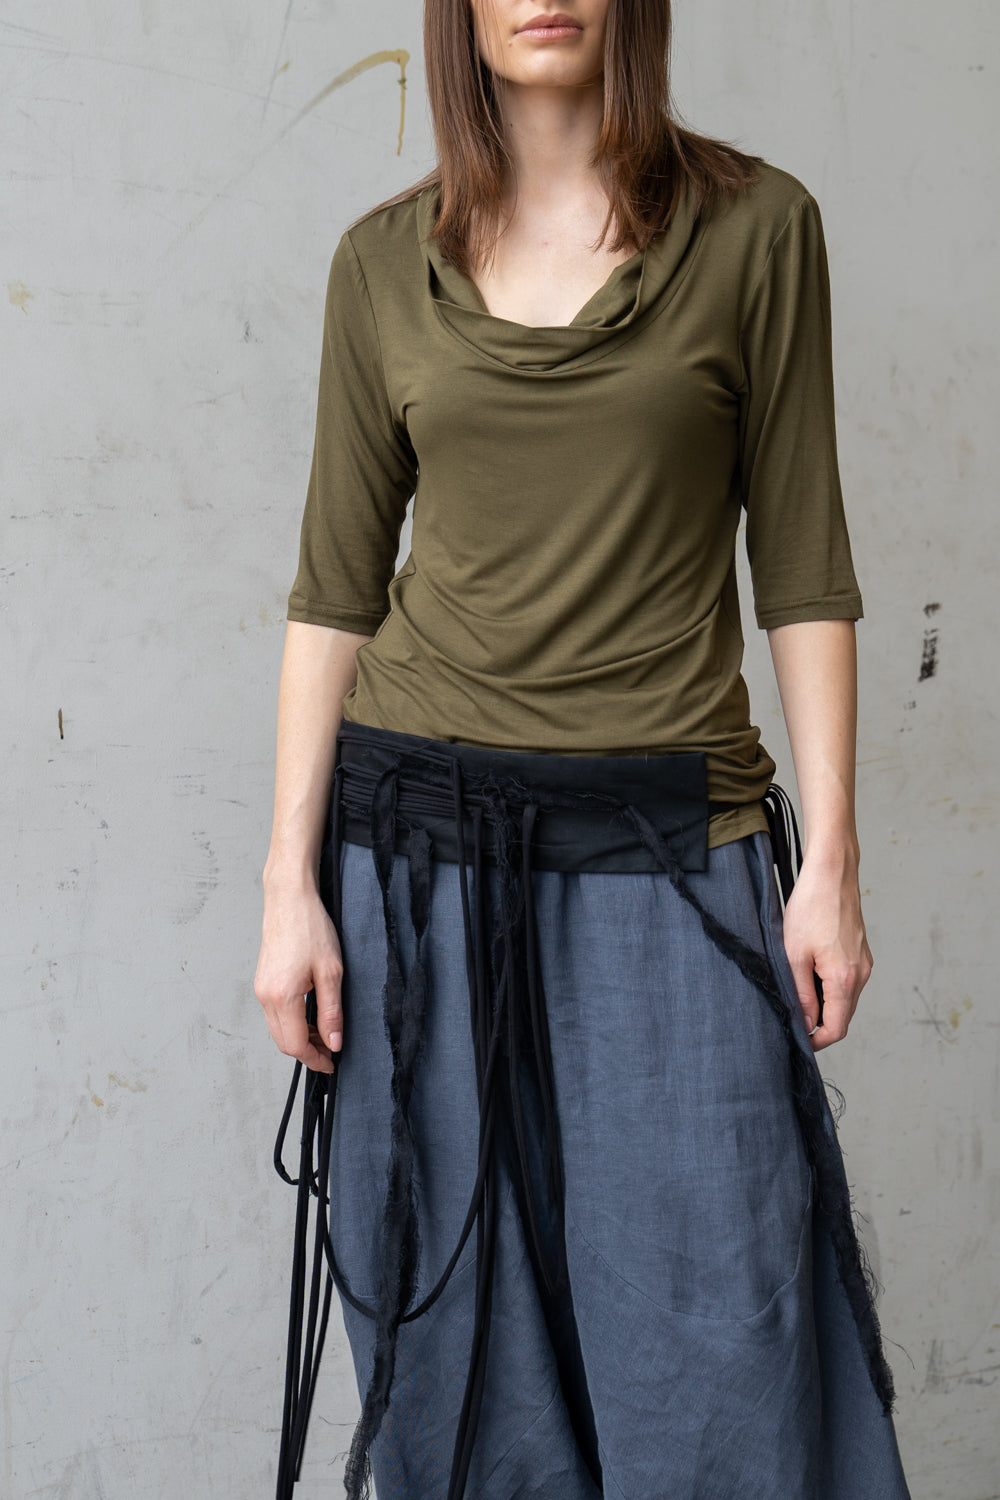 Misty Rain Collar Top Olive